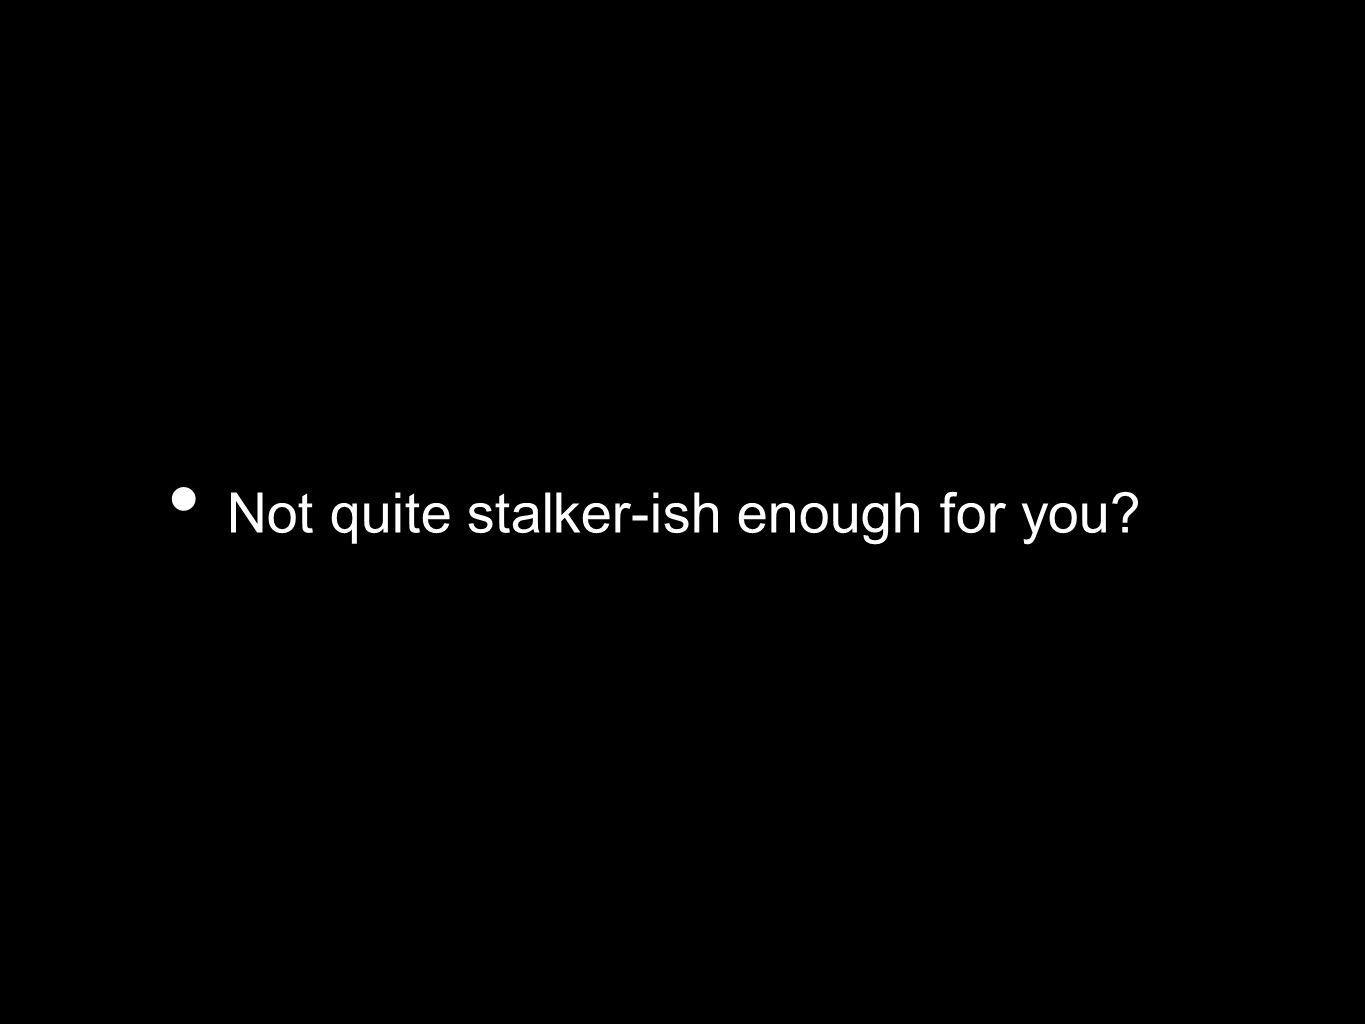 Not quite stalker-ish enough for you